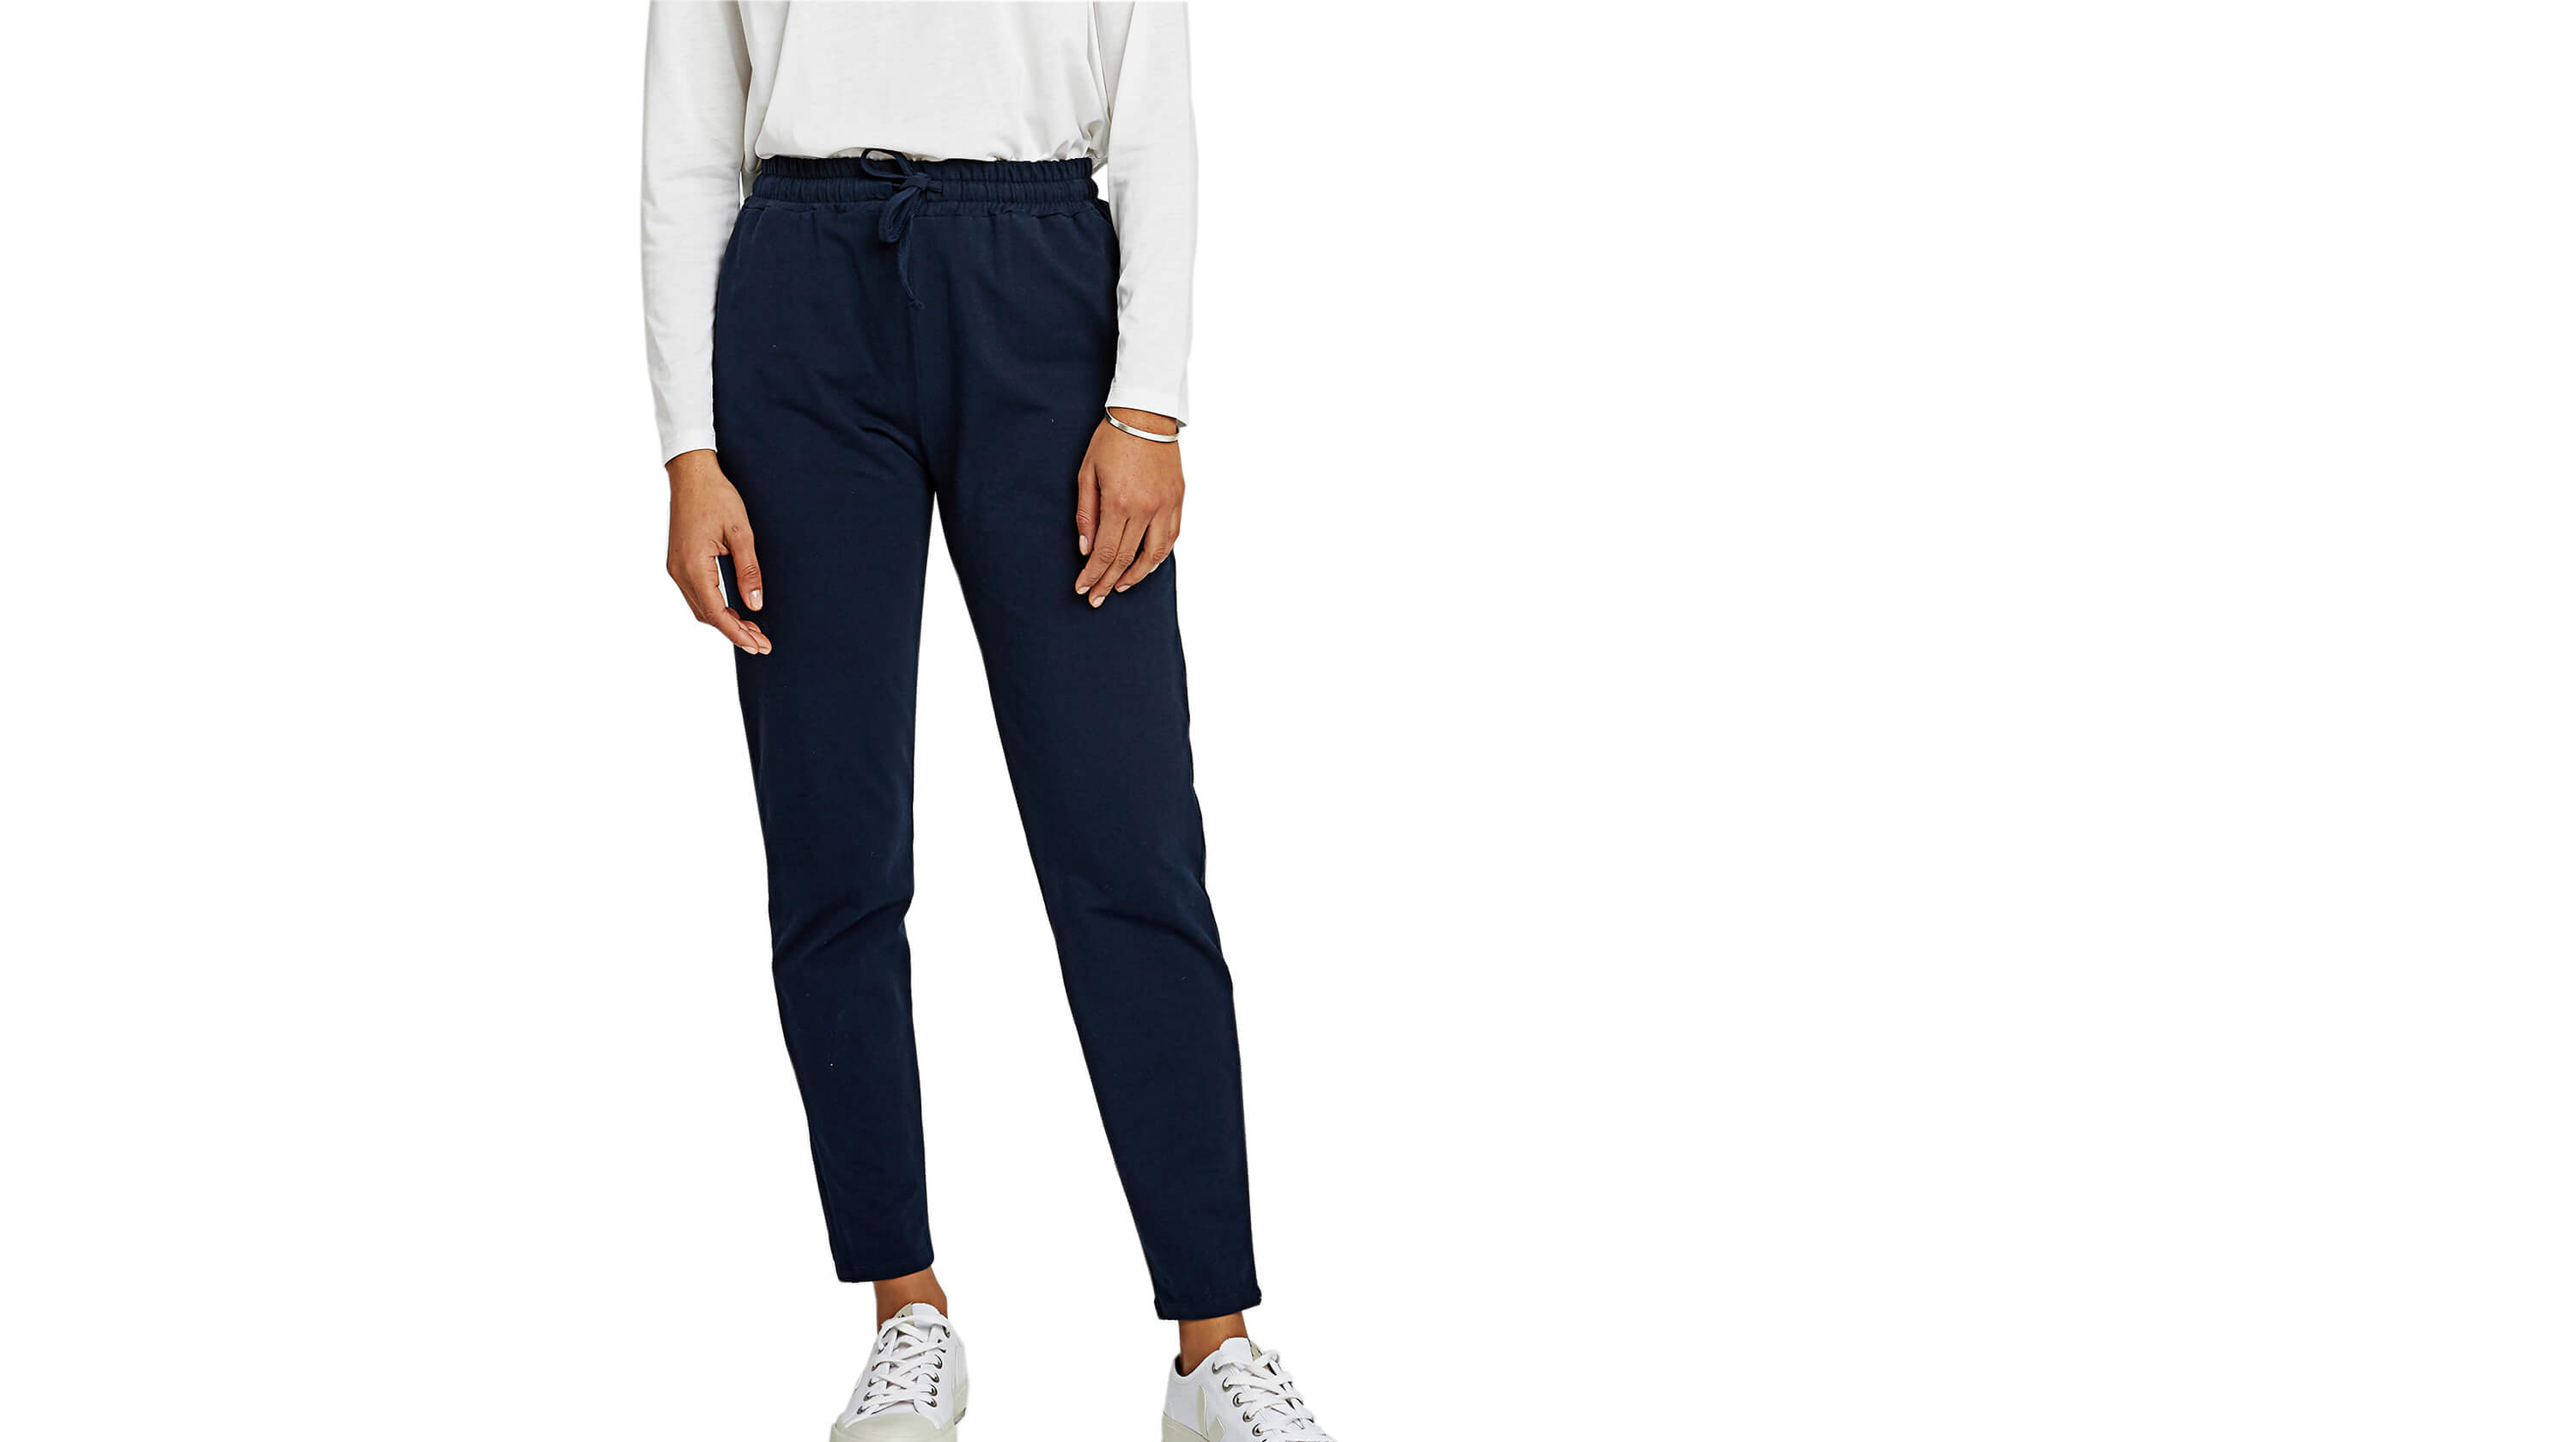 Comfortable Organic Cotton Trousers, by People Tree